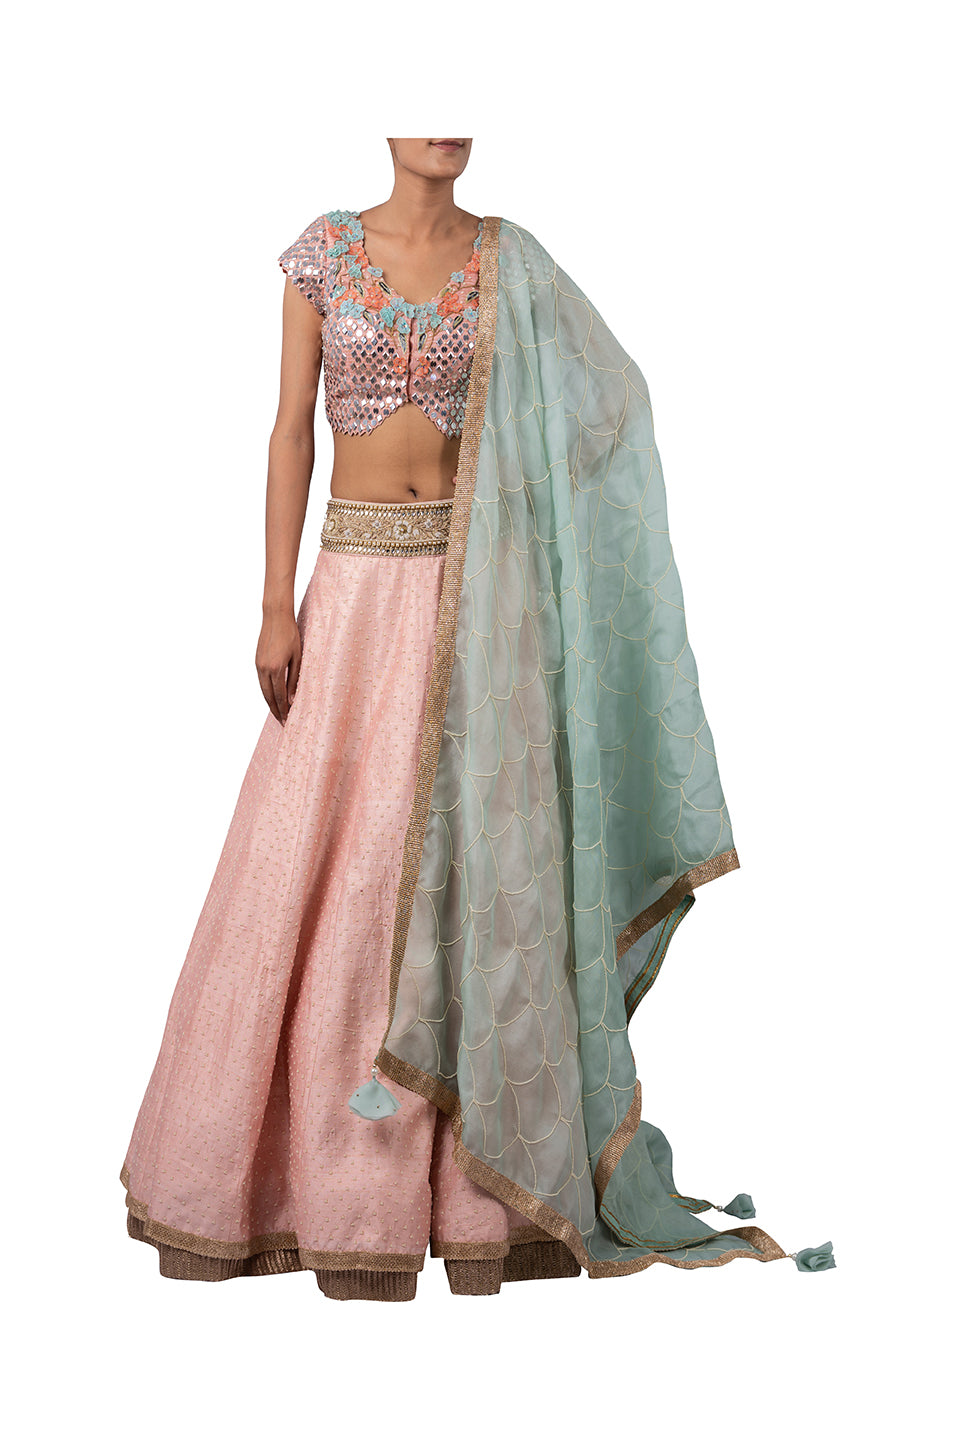 MIRROR EMBROIDERY BLOUSE WITH 3 MOTI CHETA RAW SILK GAJARI LEHENGA WITH ECO GREEN ORGANZA